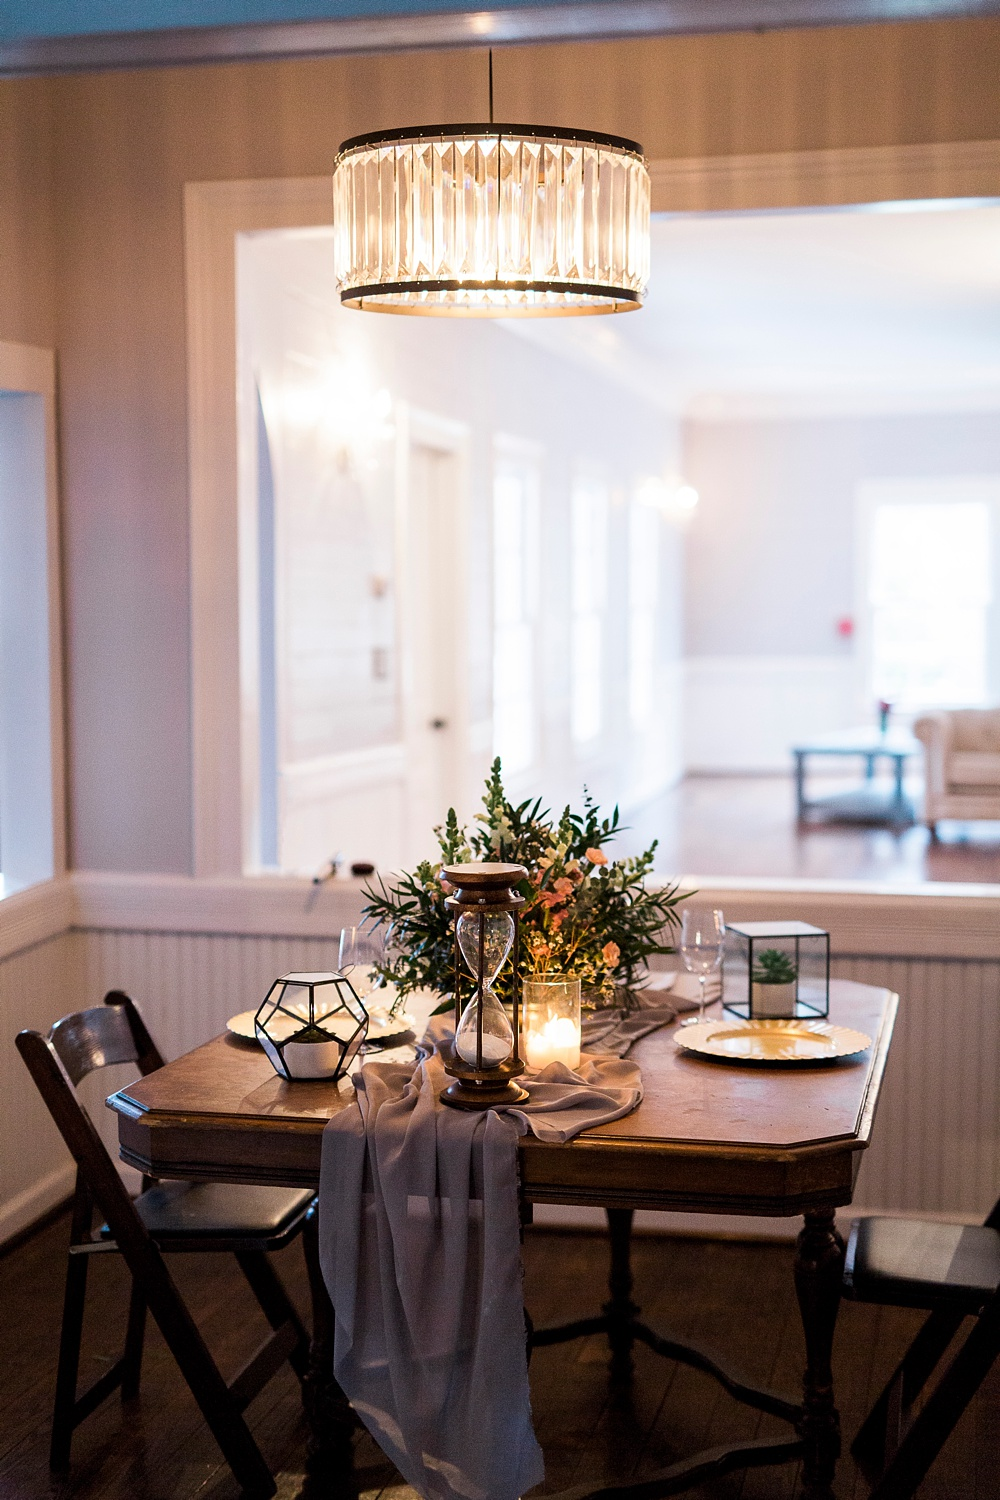 elopement style wedding table at the mim's house holly springs nc